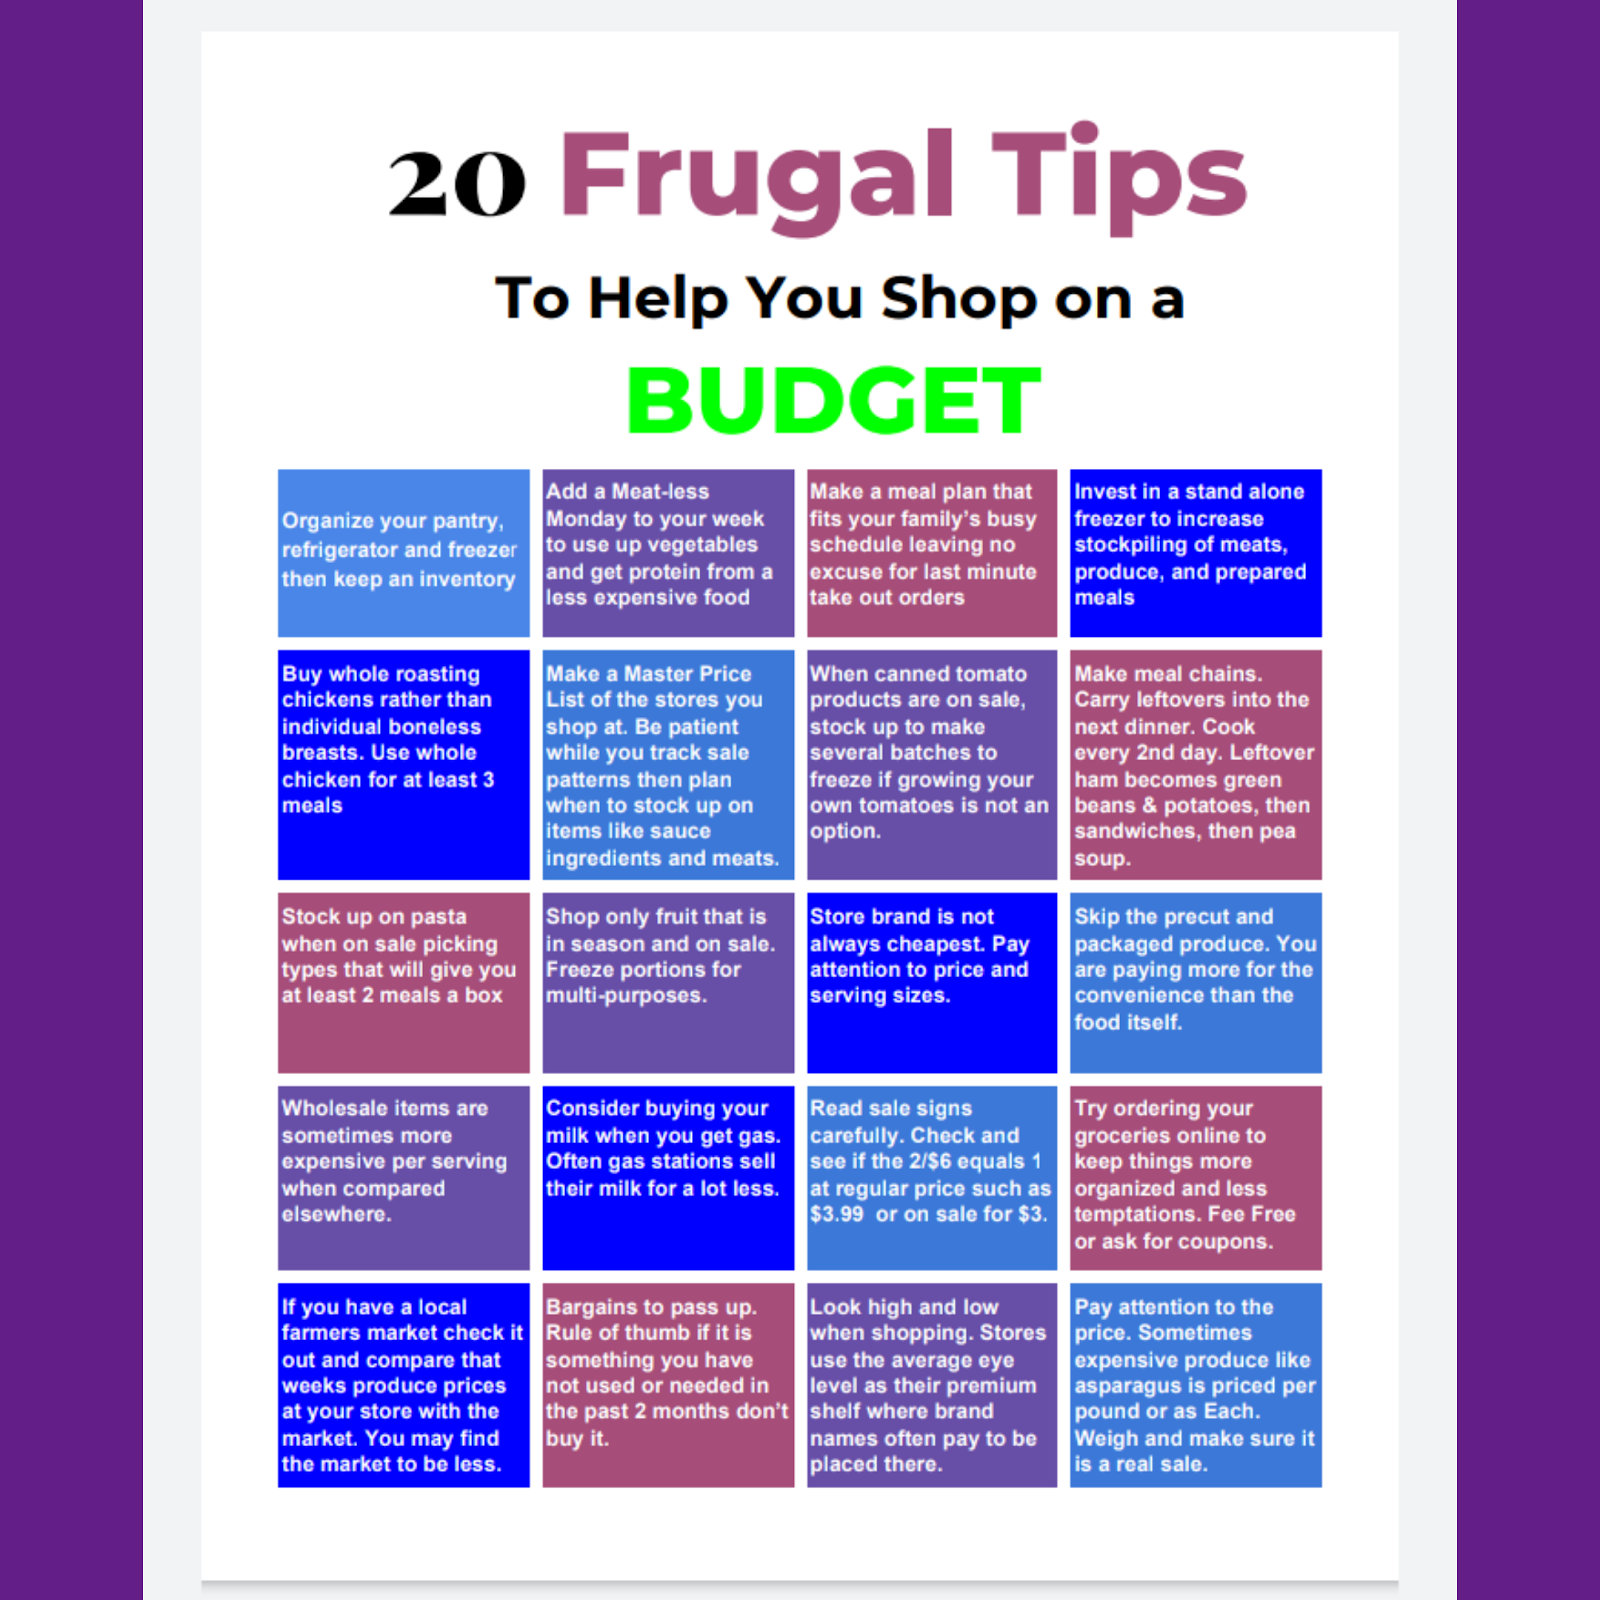 Download My Free 20 Frugal Grocery Shopping Tips!